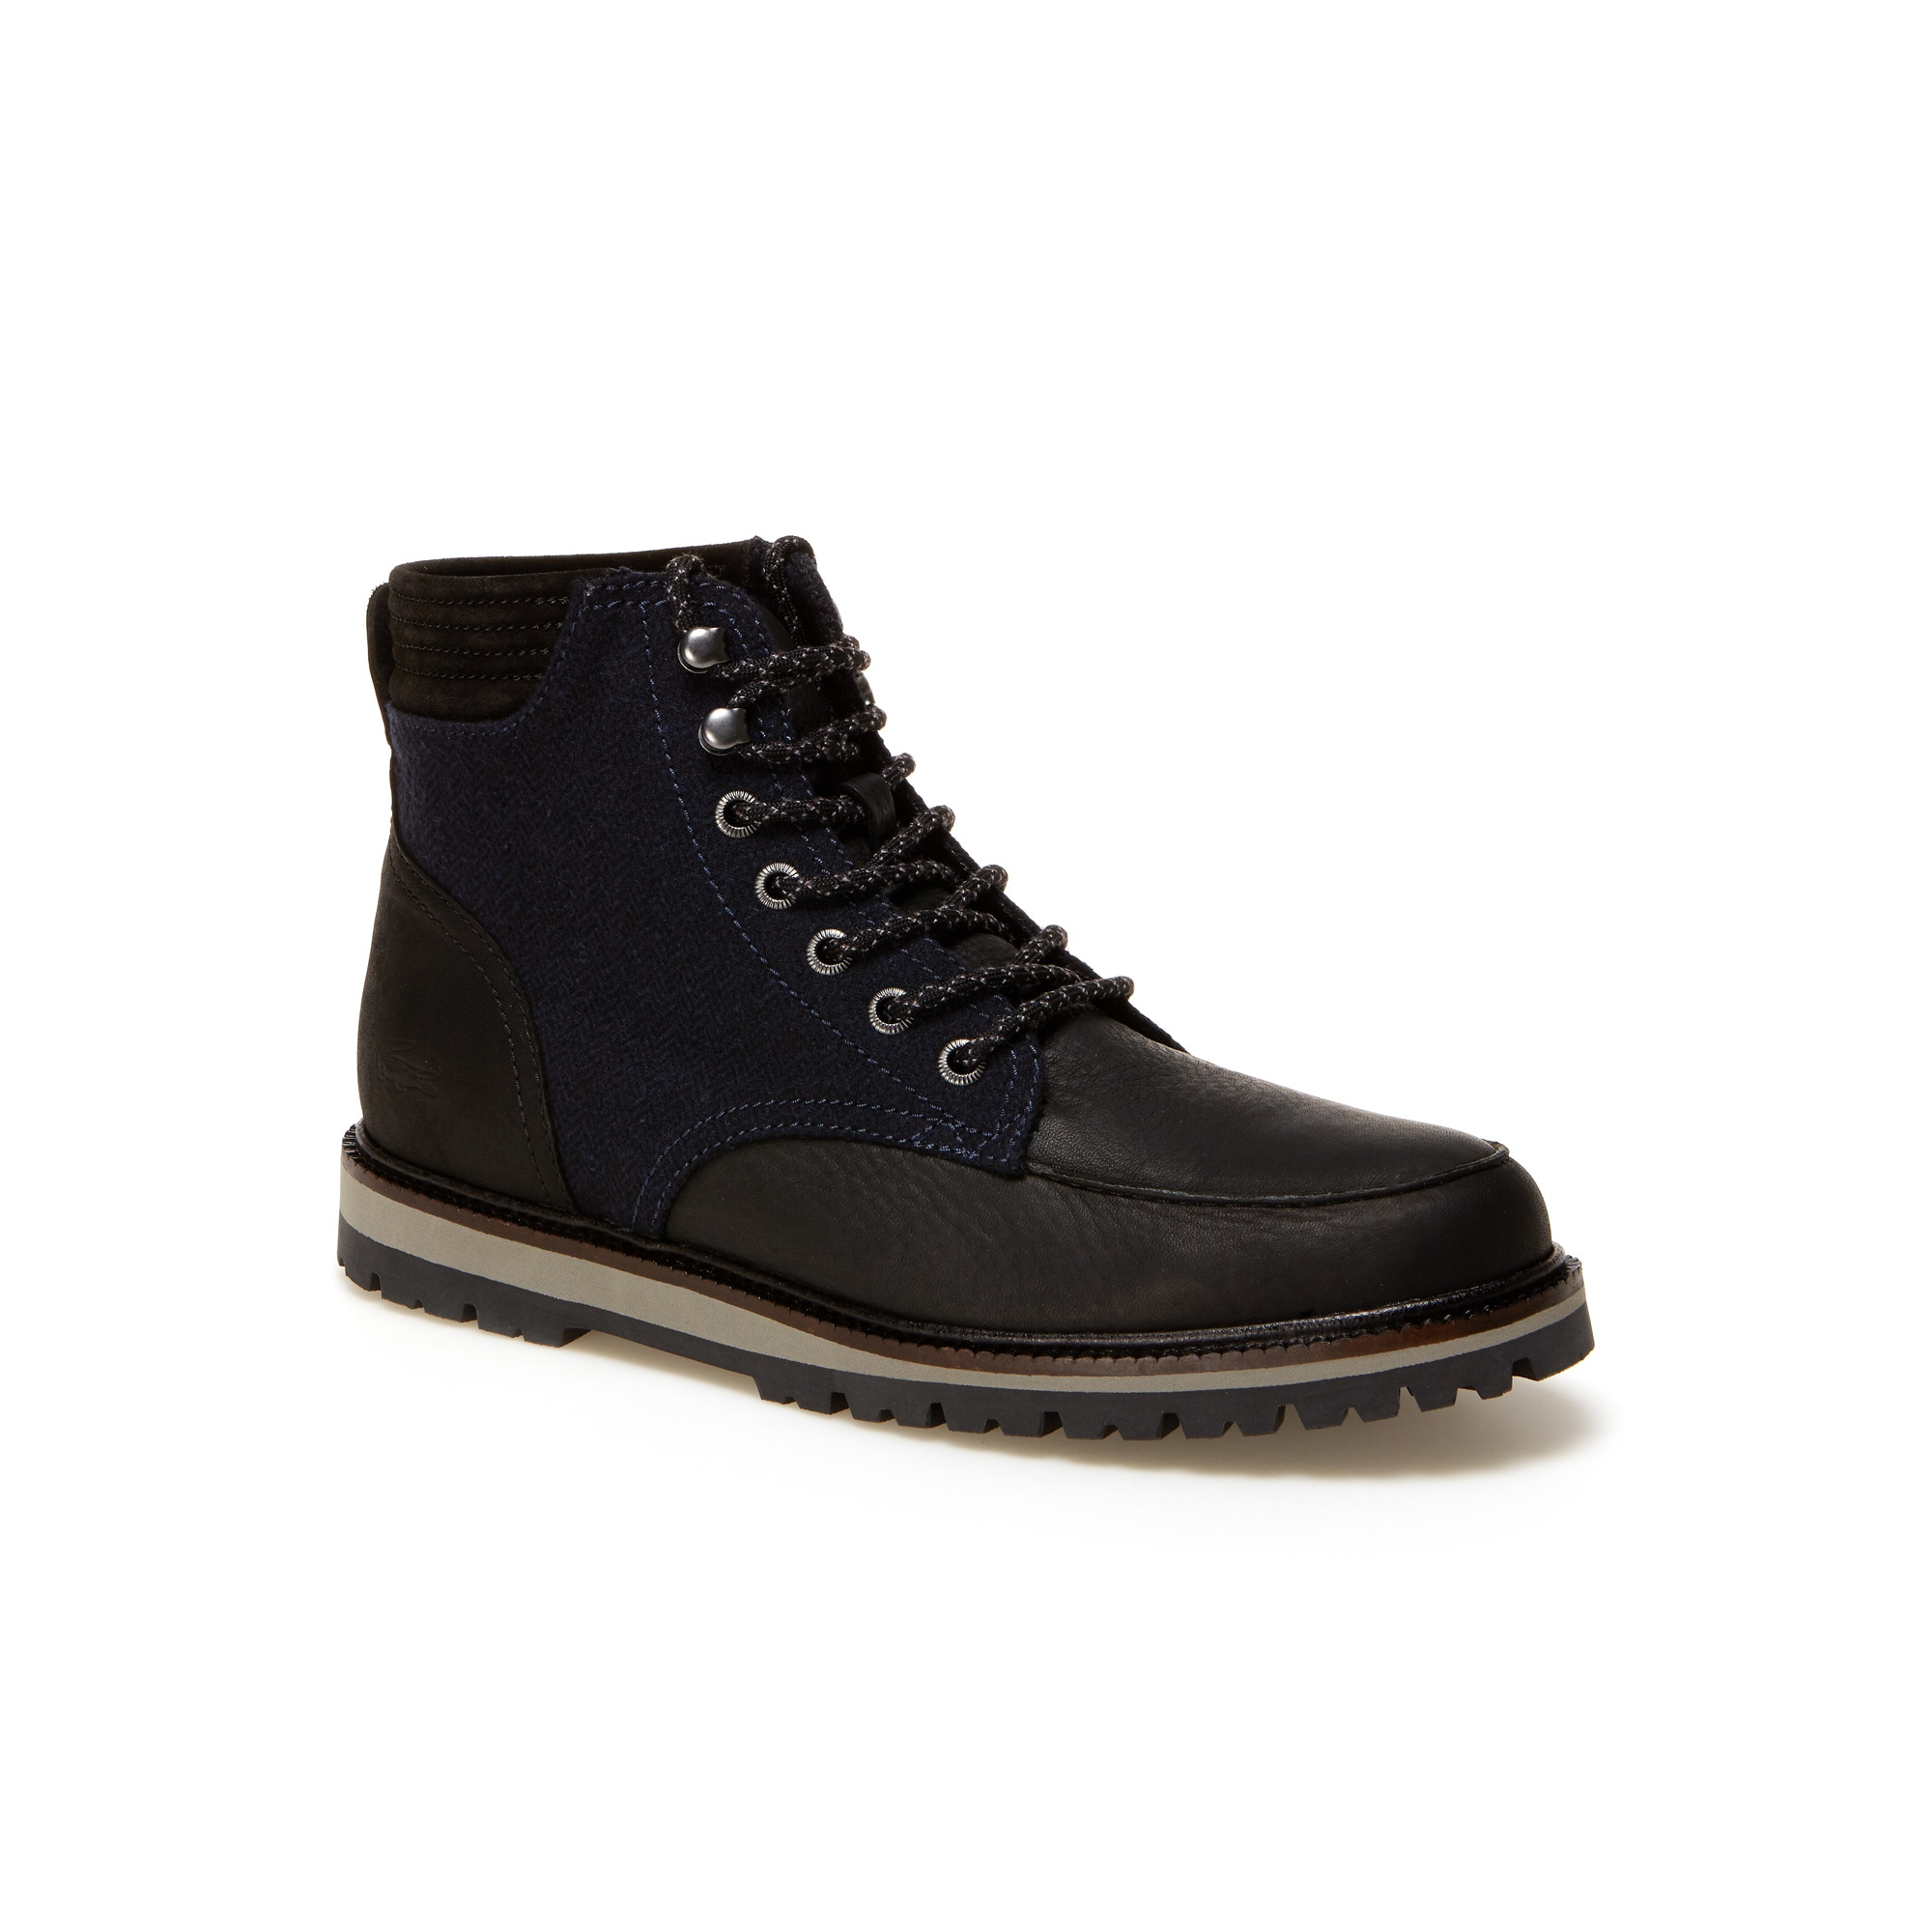 Men's Leather Montbard Boots